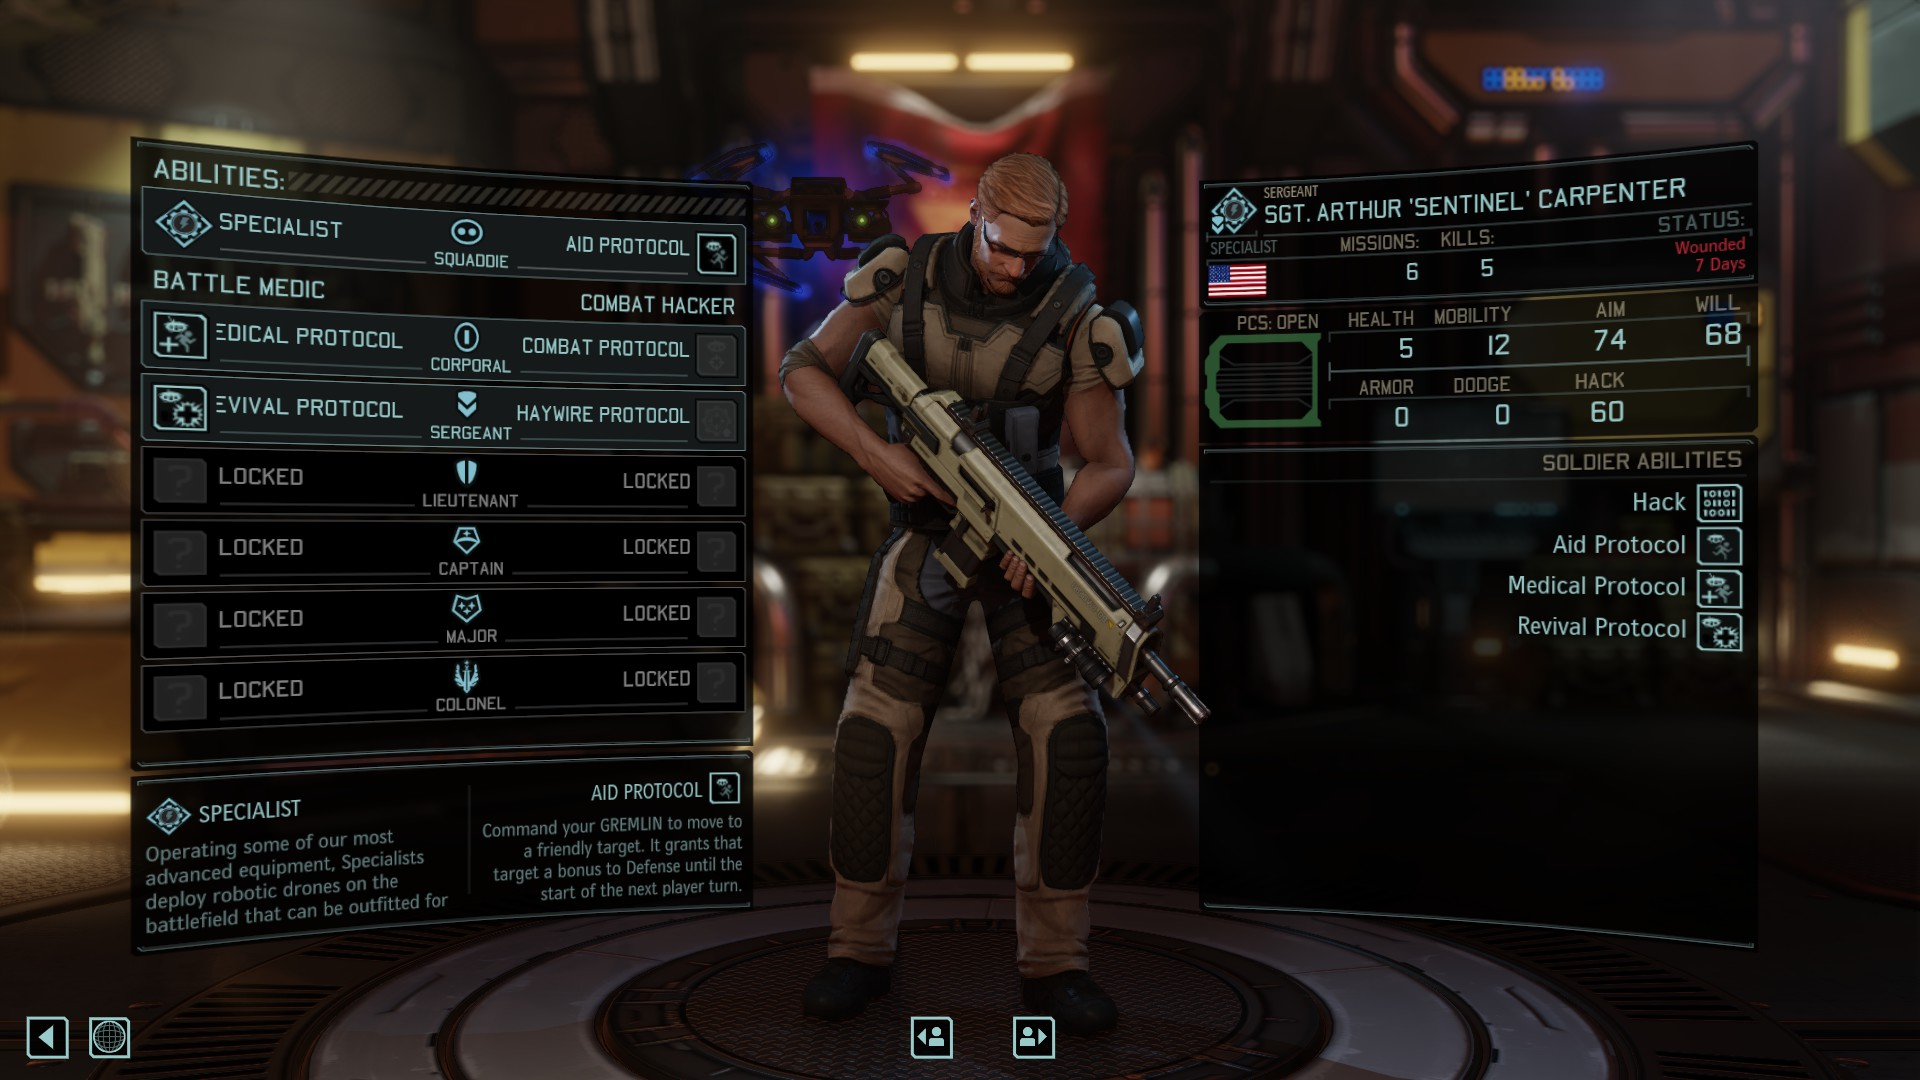 XCOM 2' Specialist Guide: Skill Tree Breakdown And Tips For